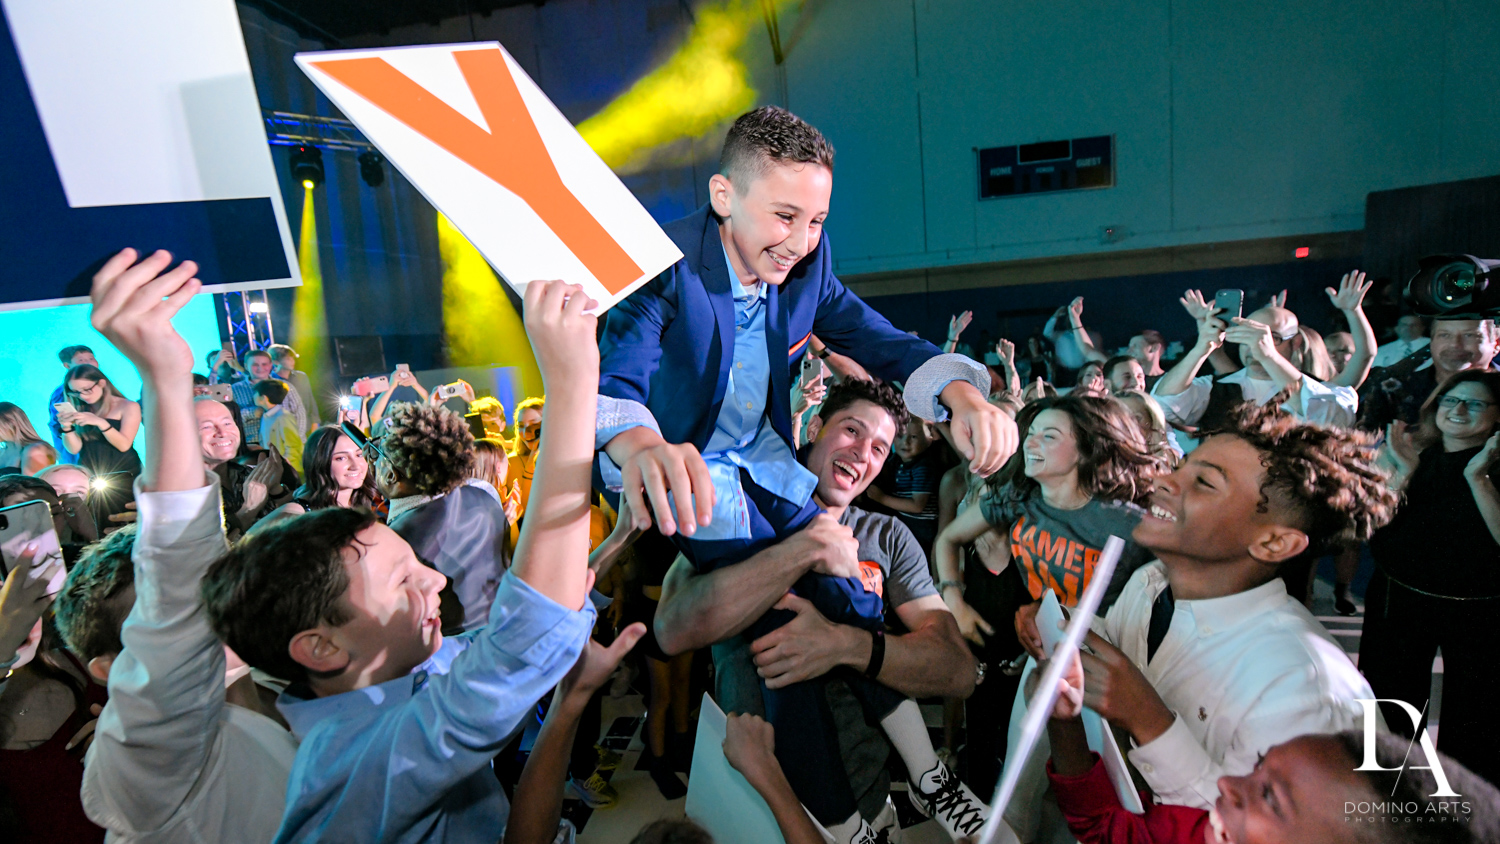 crowd surfing at Sports Theme Bar Mitzvah at DS Sports Plex by Domino Arts Photography